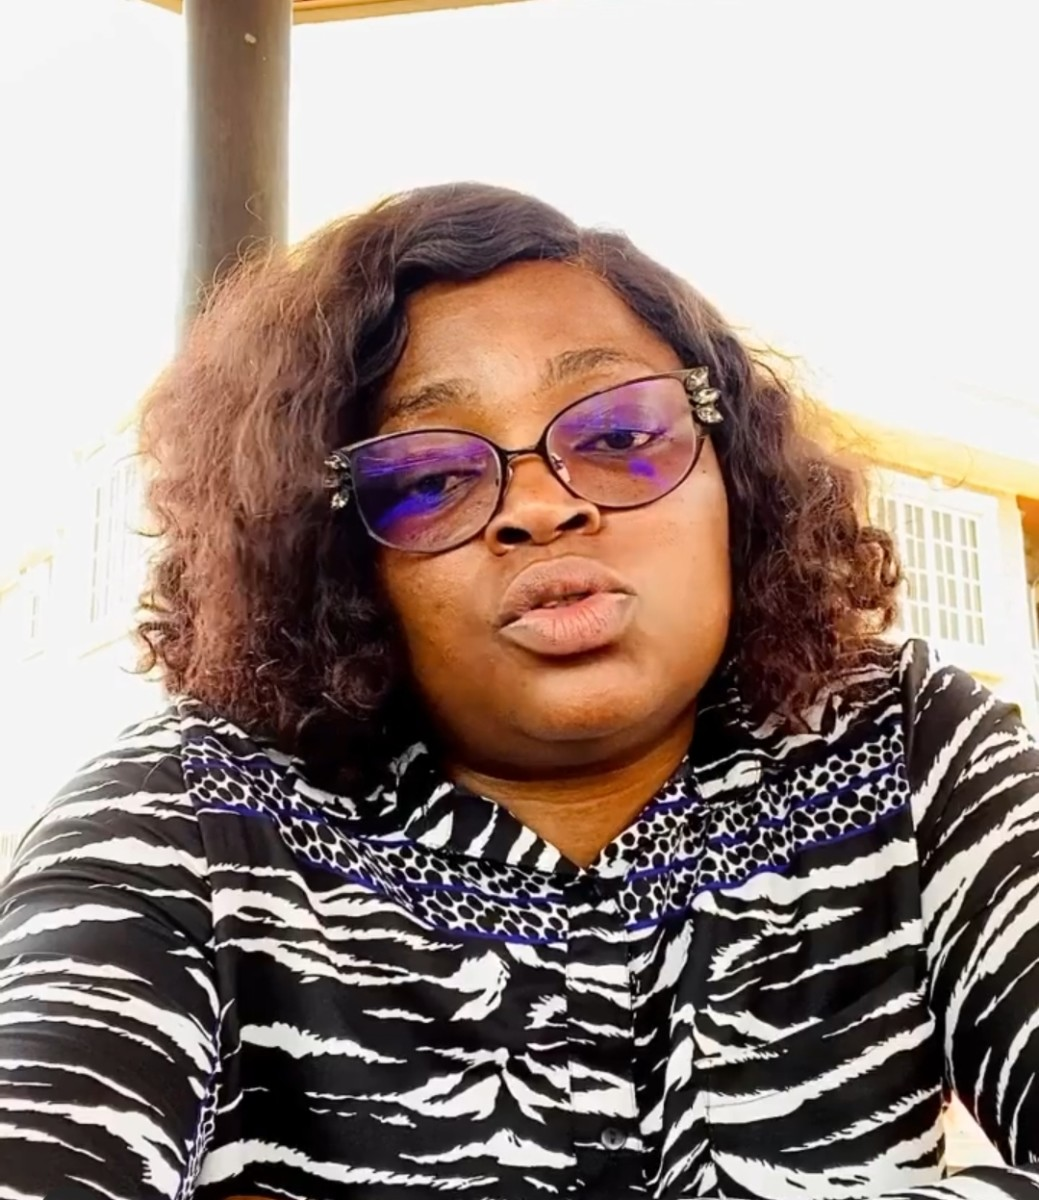 Police Arrests Funke Akindele, In Search Of Naira Marley, Others Over Party Amid Coronavirus